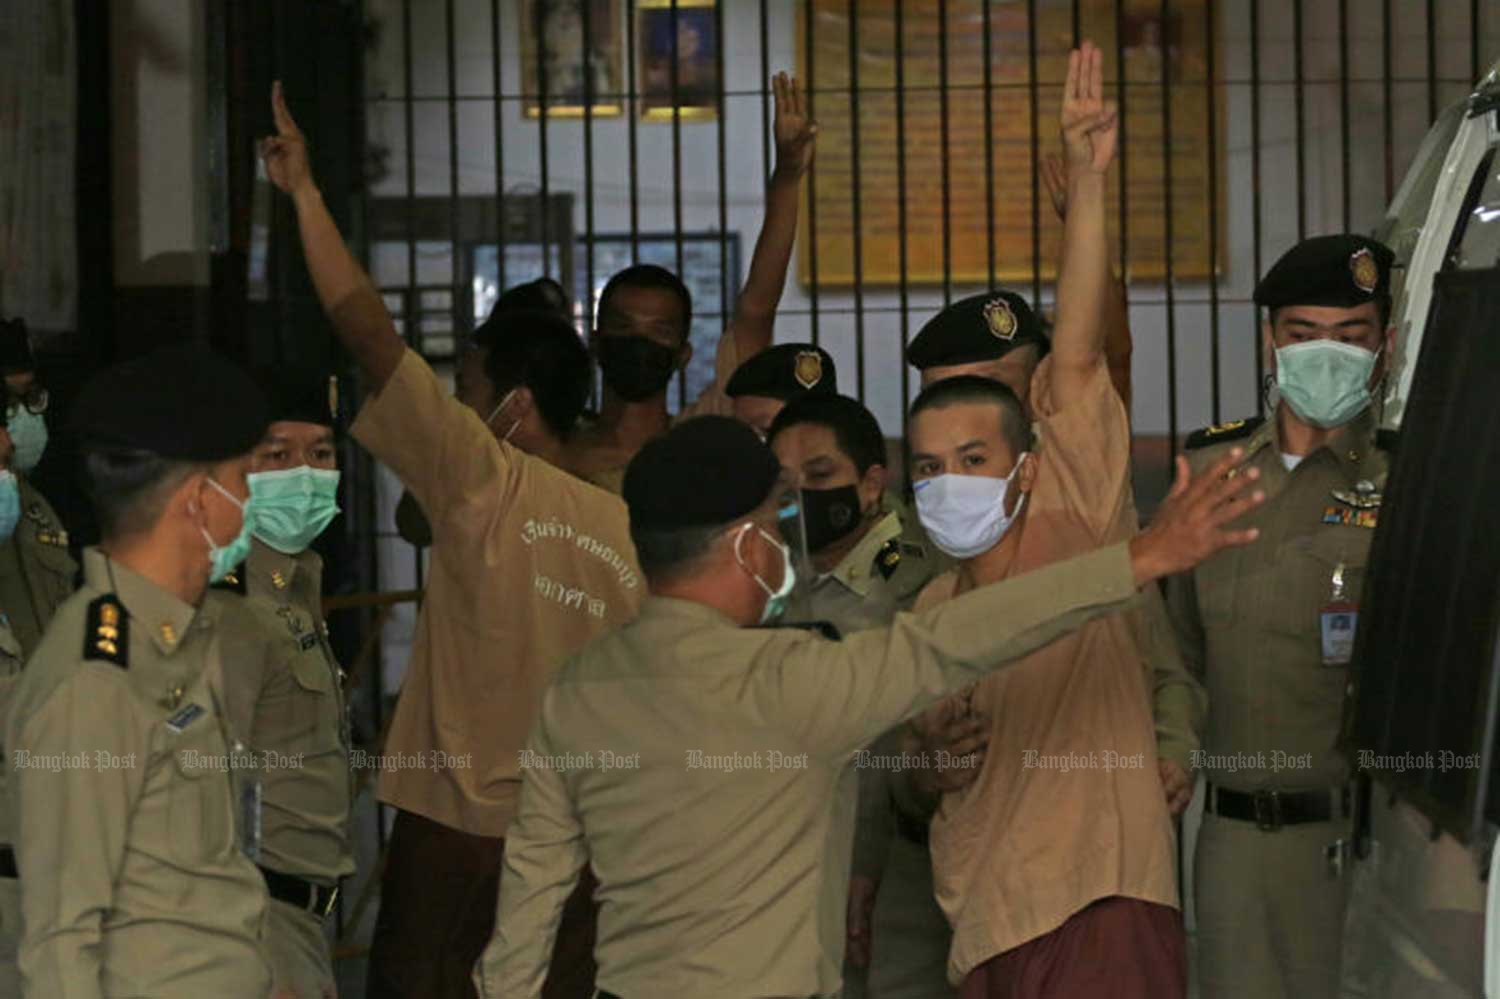 Twenty-two core members of the anti-government Rassadop group are taken to prisons on March 15. (File photo)